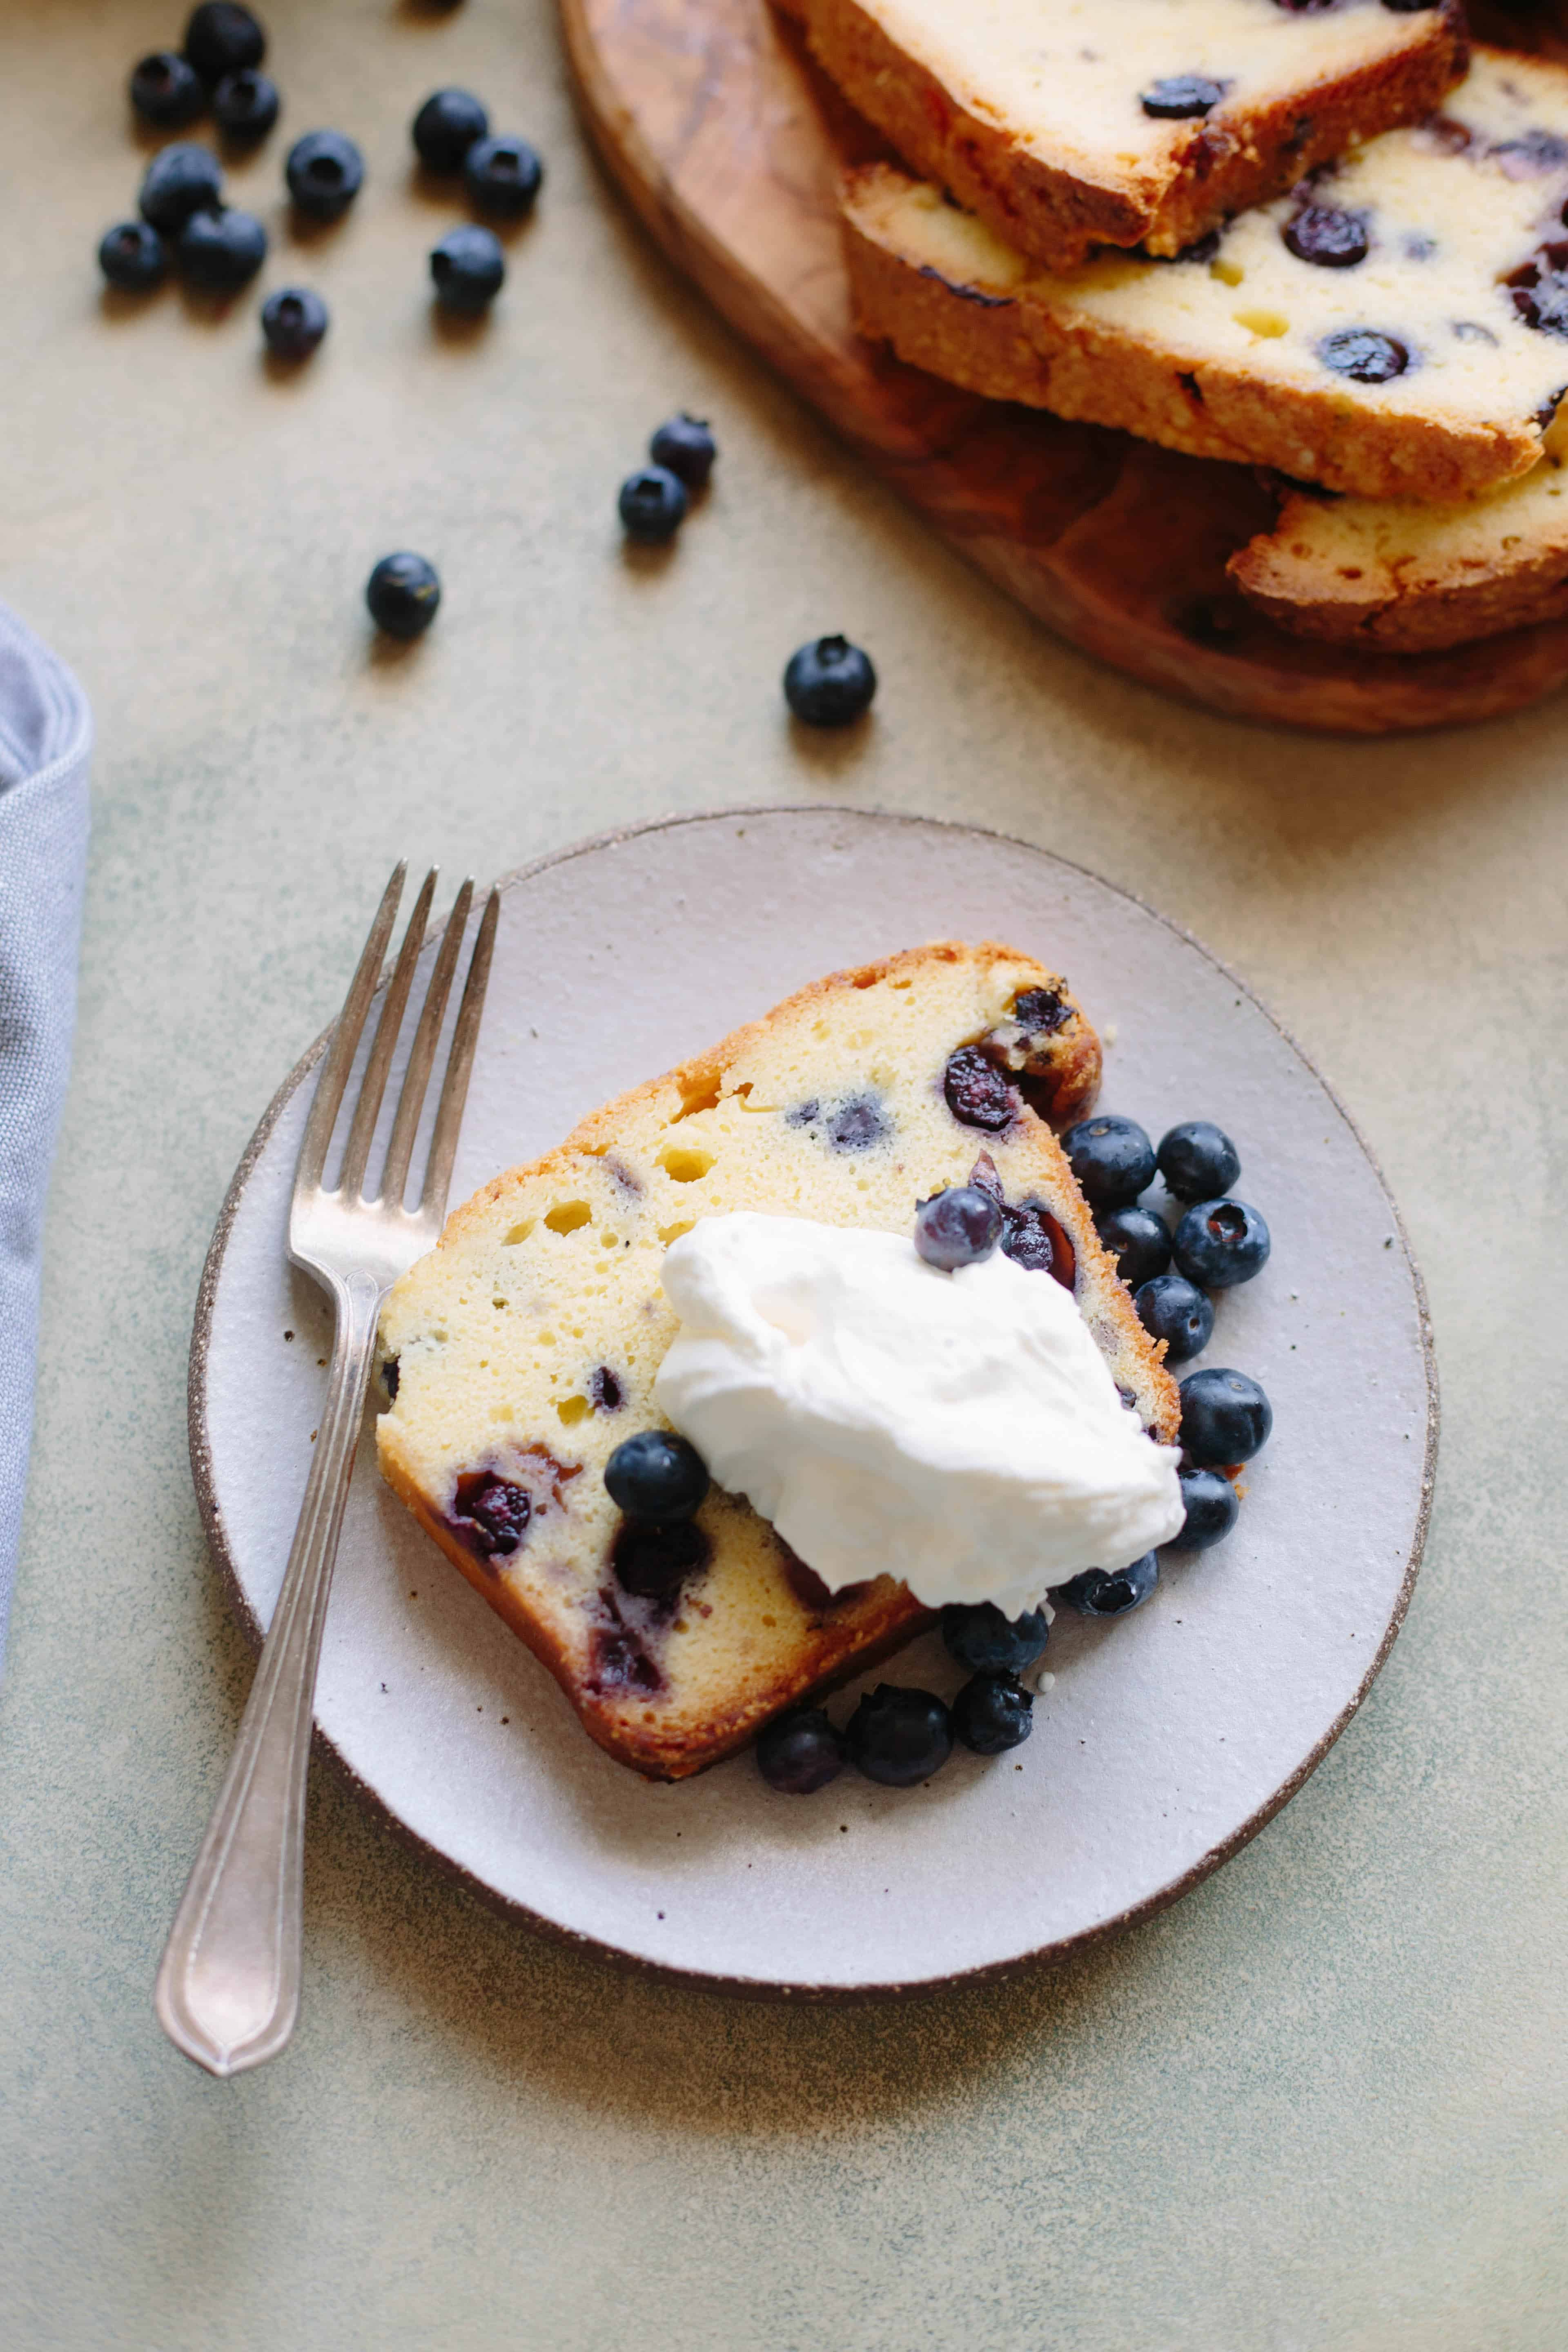 A slice of lemon blueberry pound cake topped with whipped cream on a dessert plate.